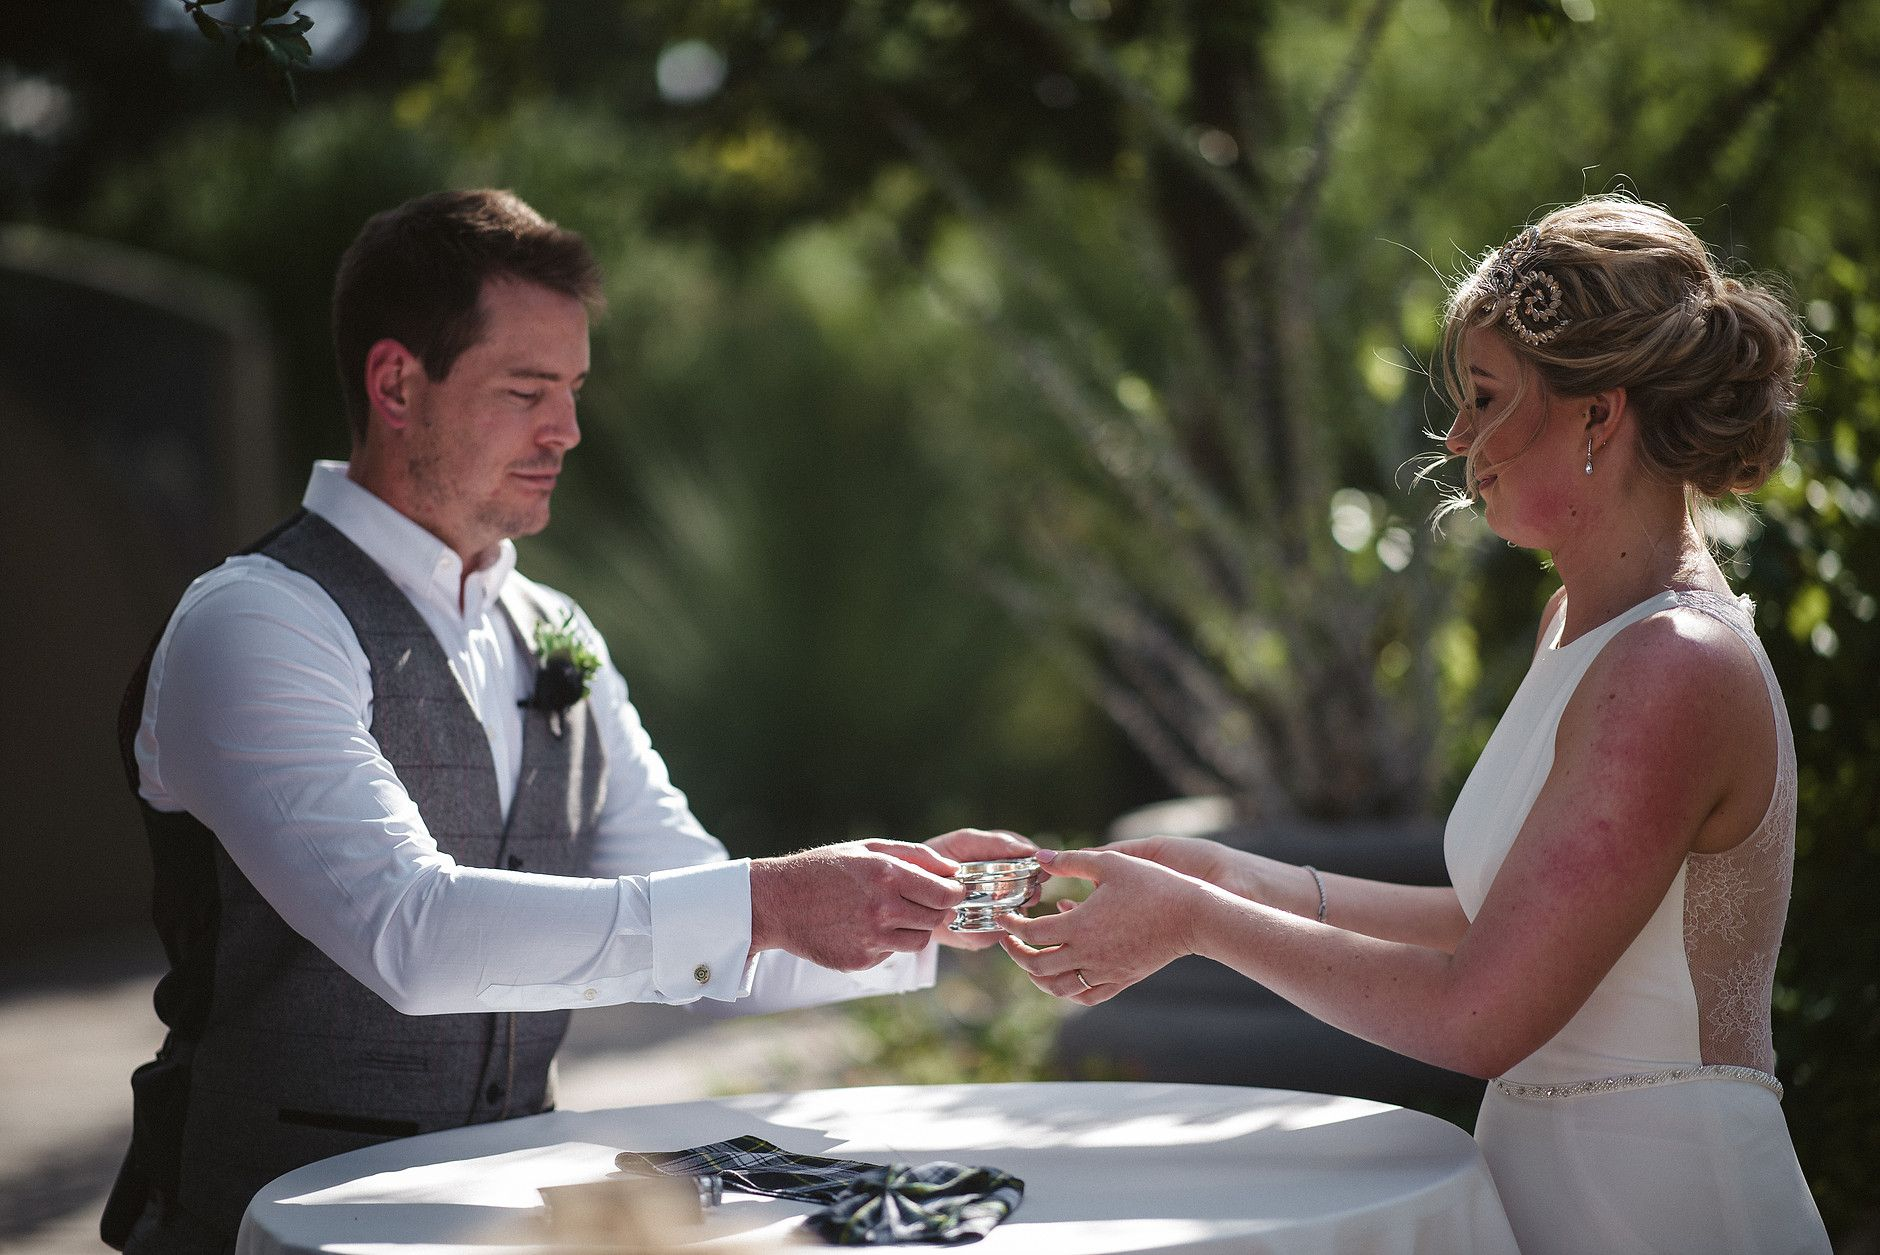 differnt rituals in your ceremony